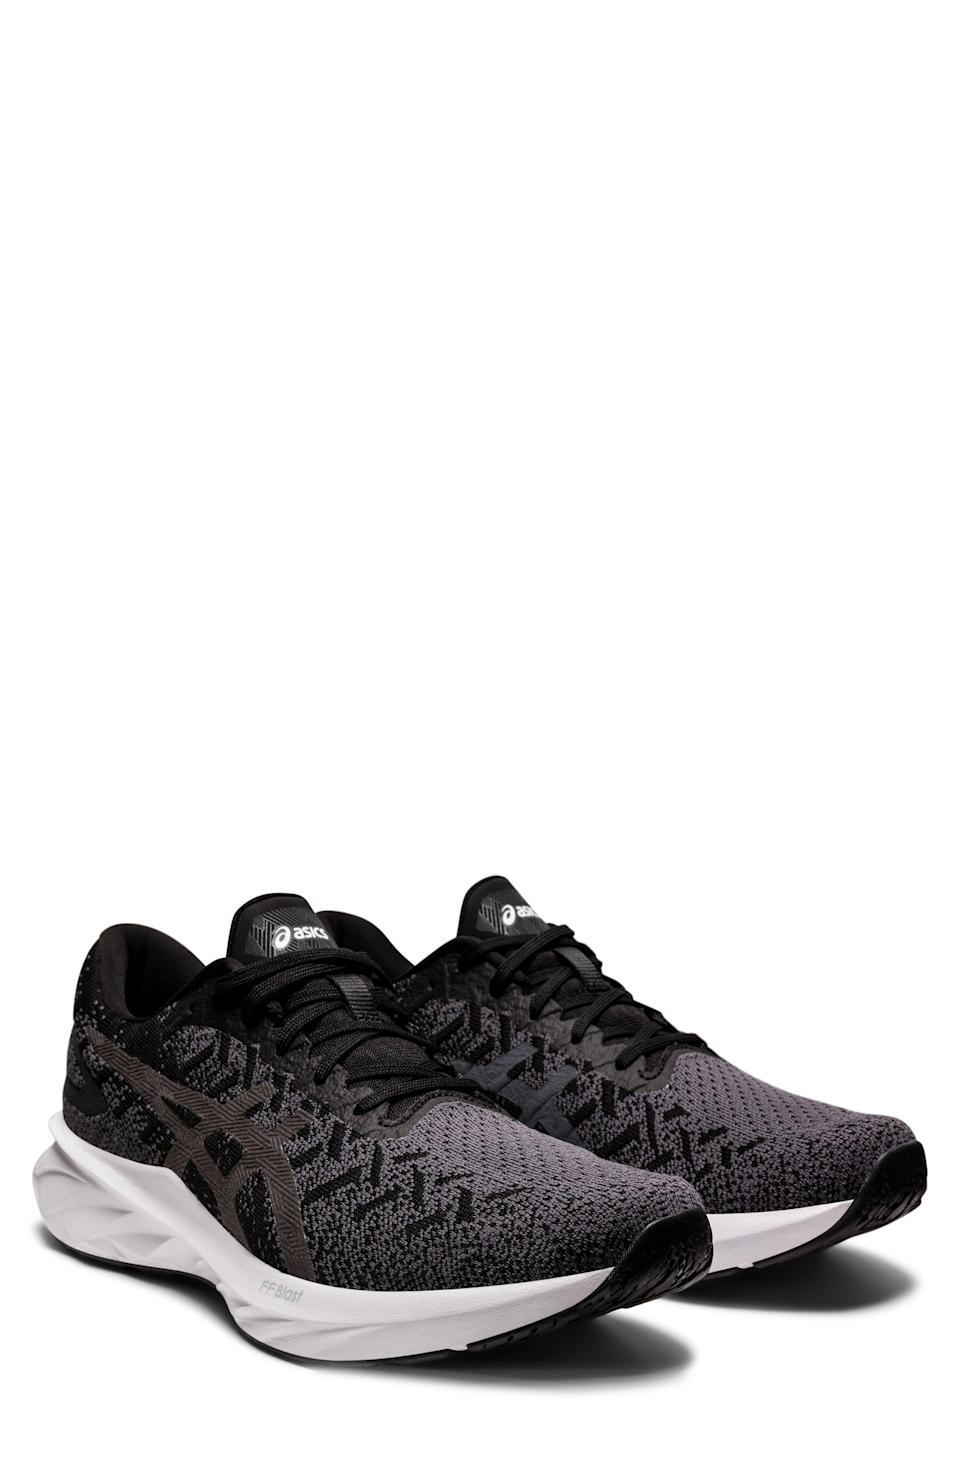 """<p><strong>ASICS</strong></p><p>nordstrom.com</p><p><a href=""""https://go.redirectingat.com?id=74968X1596630&url=https%3A%2F%2Fwww.nordstrom.com%2Fs%2Fasics-dynablast-2-running-shoe-men%2F5794664&sref=https%3A%2F%2Fwww.bestproducts.com%2Ffitness%2Fg37158206%2Fnordstroms-anniversary-sale-best-sneakers%2F"""" rel=""""nofollow noopener"""" target=""""_blank"""" data-ylk=""""slk:BUY IT HERE"""" class=""""link rapid-noclick-resp"""">BUY IT HERE</a></p><p><del>$110<br></del><strong>$69.90</strong></p><p>The right pair of sneakers can turn your runs into a rocketship-like experience. If you want to bring some of that extraterrestrial magic to the track or treadmill, check out ASICS' Dynablast, which features the ultra-bouncy FlyteFoam Blast cushioning. </p>"""